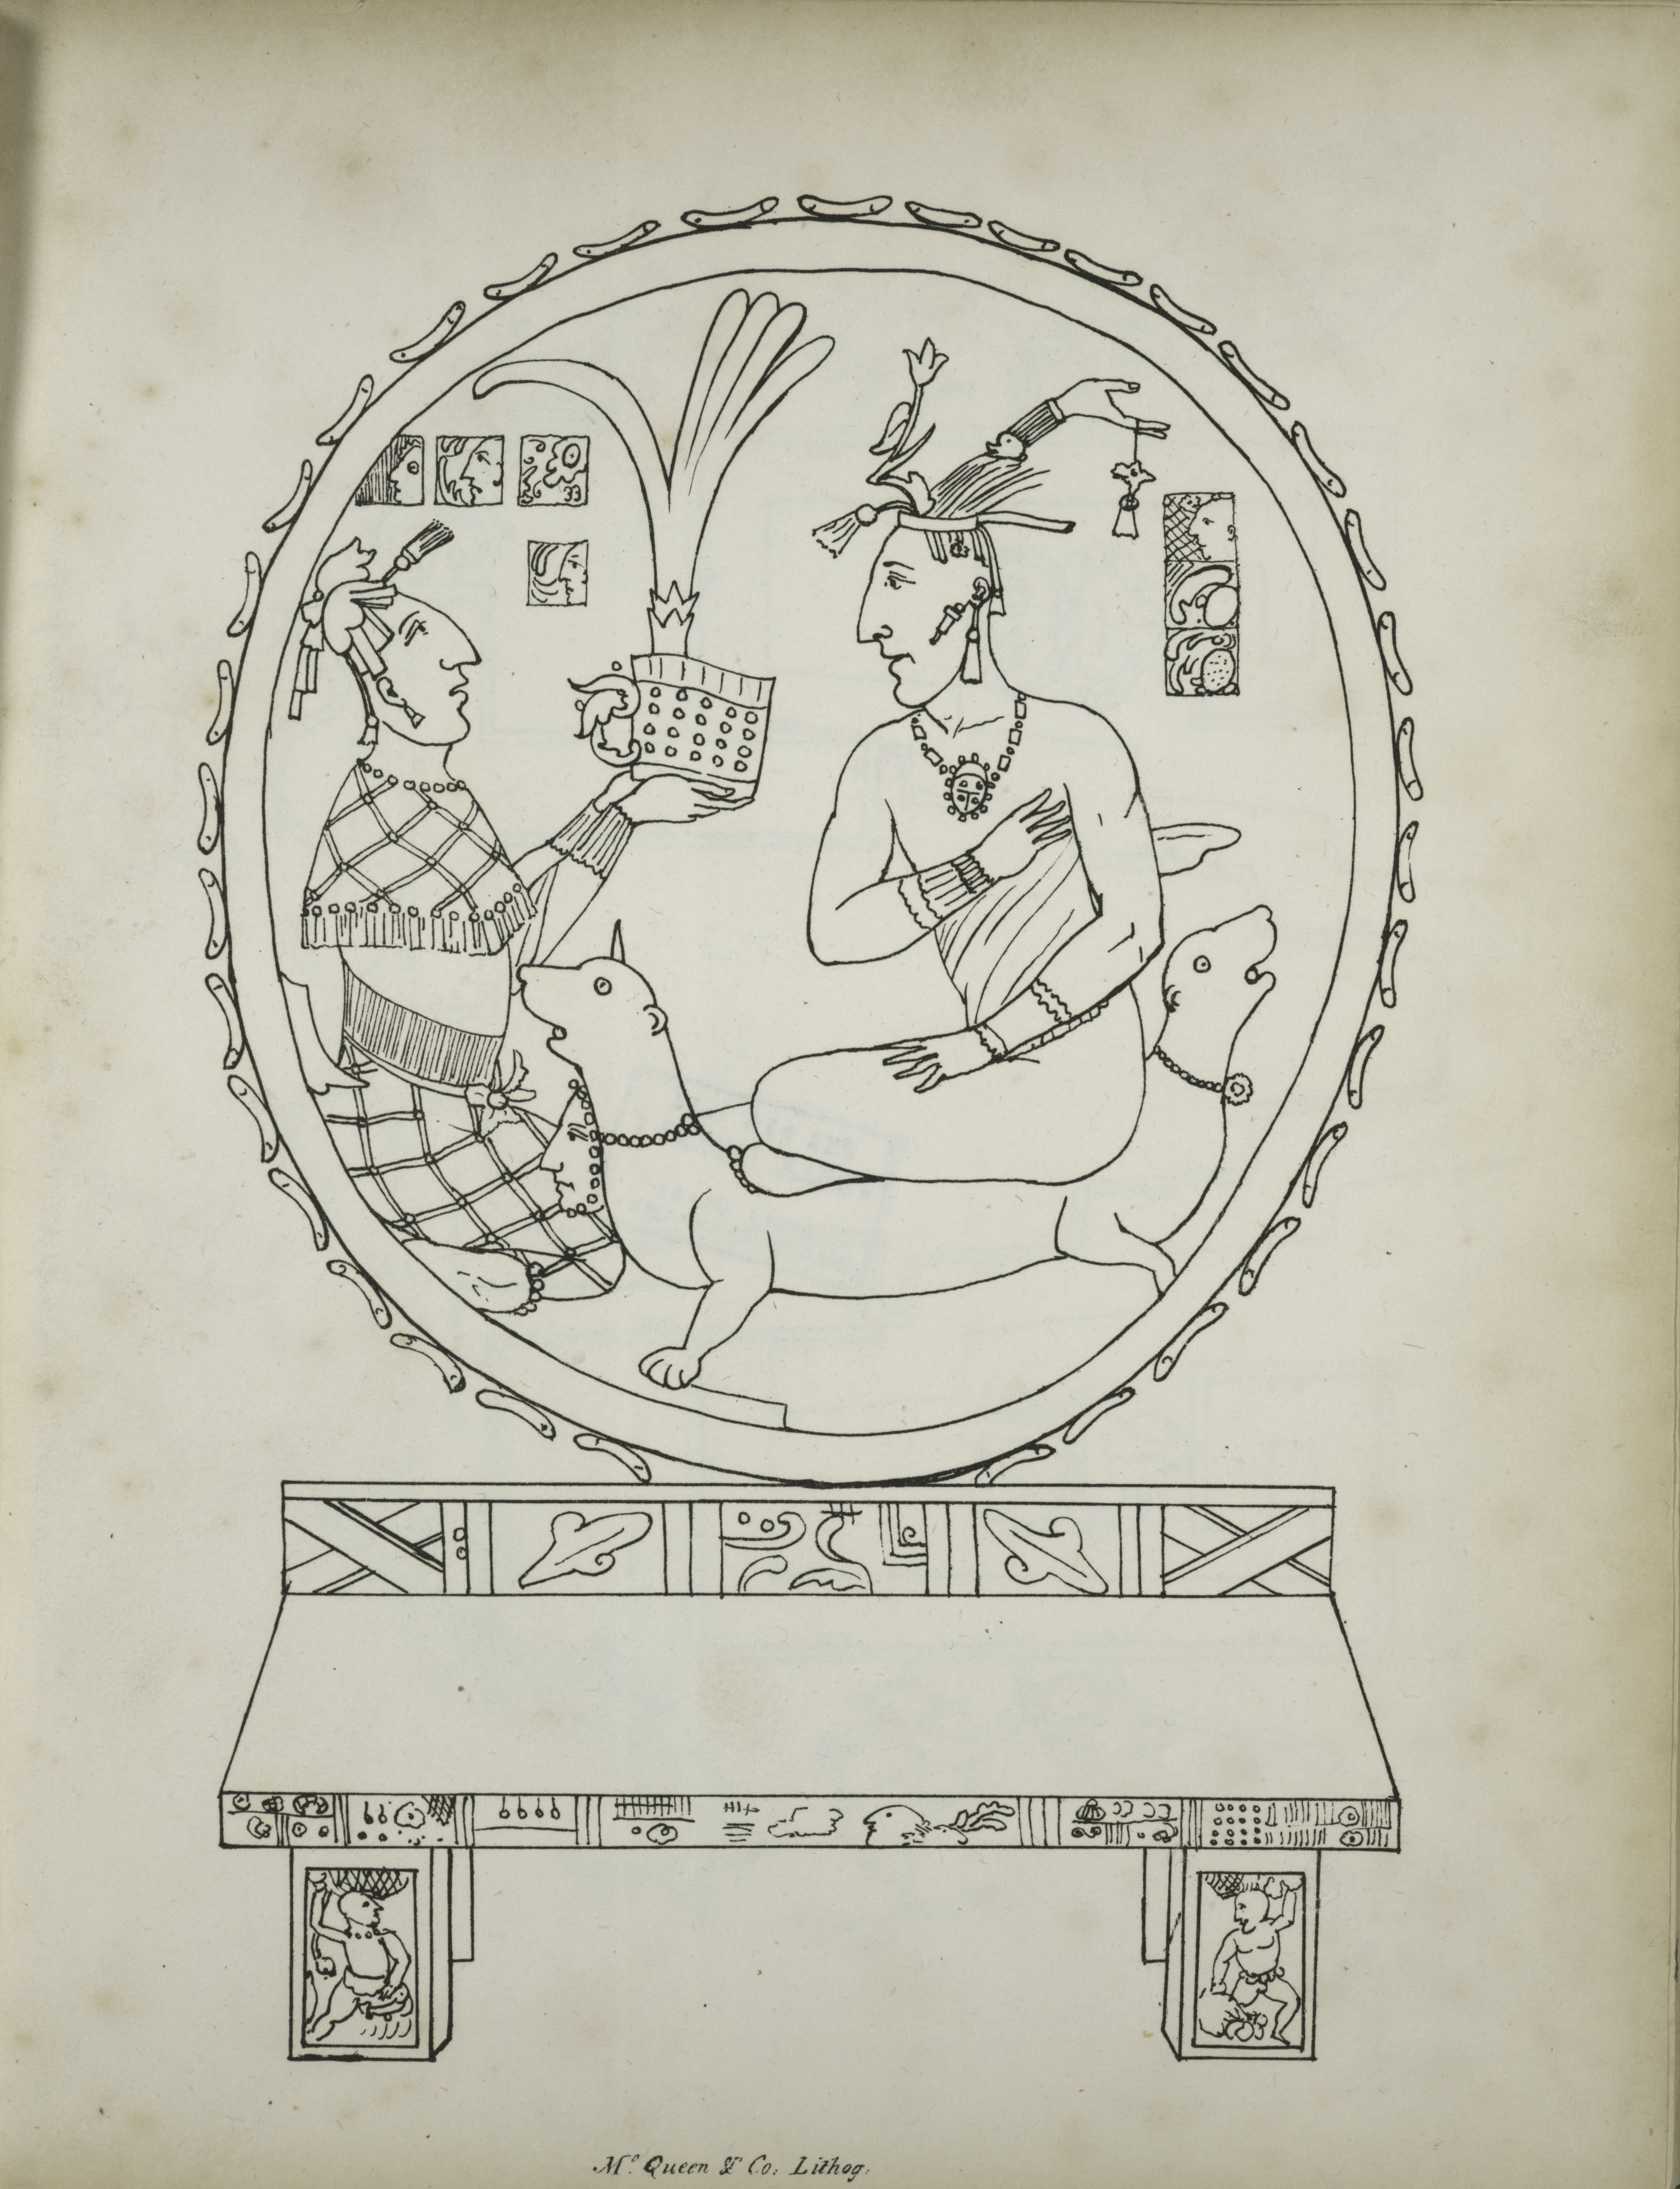 Description of the Ruins of an Ancient City - Two seated figures and two-headed dog within a circle, over bench decorated with figures and abstract elements (1822)